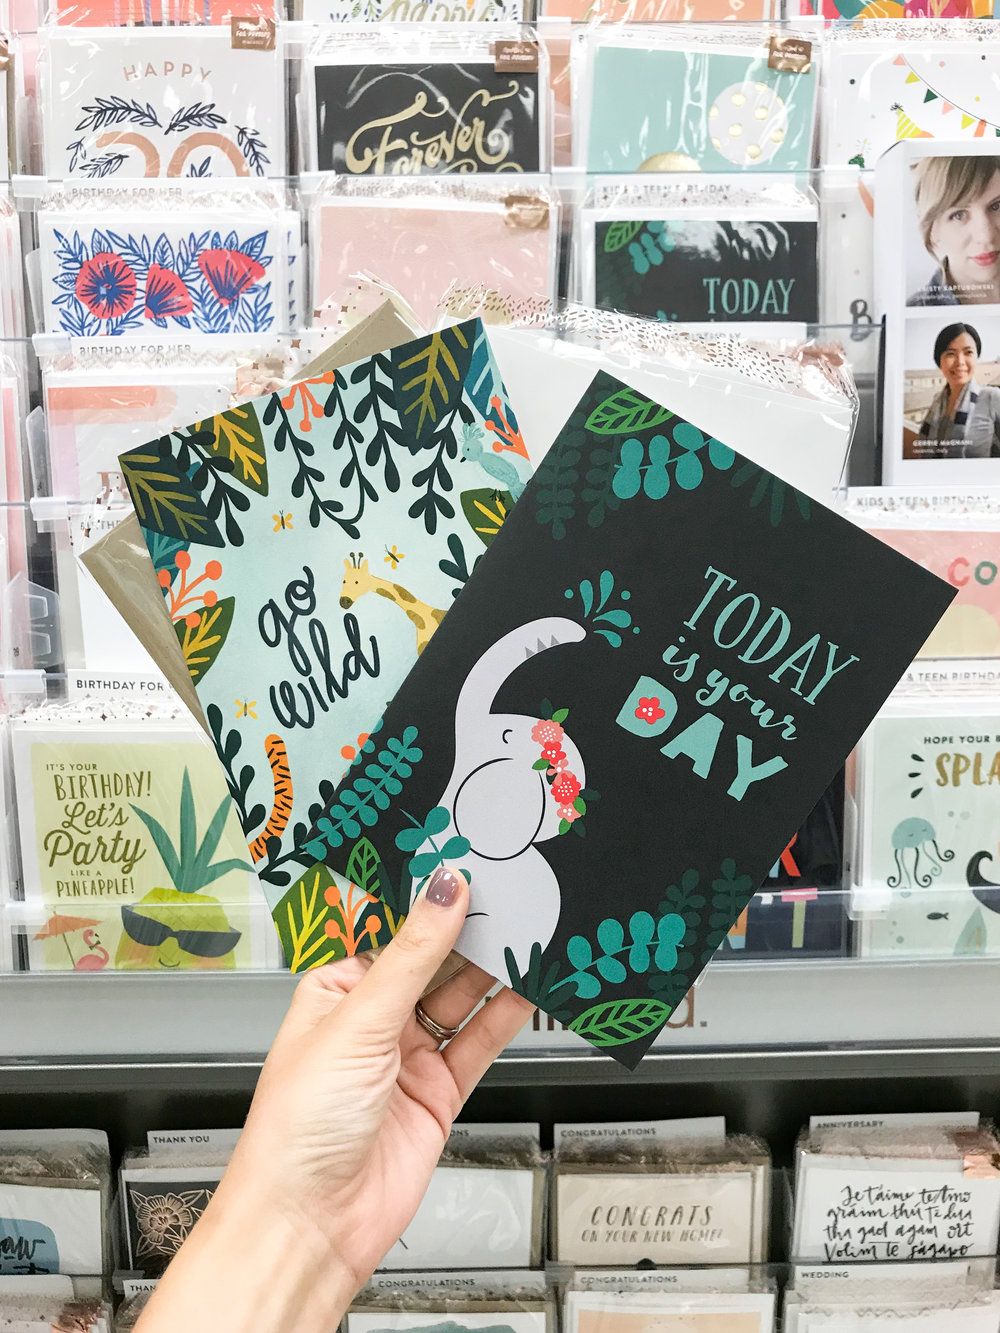 Greeting card designs by Pace Creative Design Studio | Sold at Target